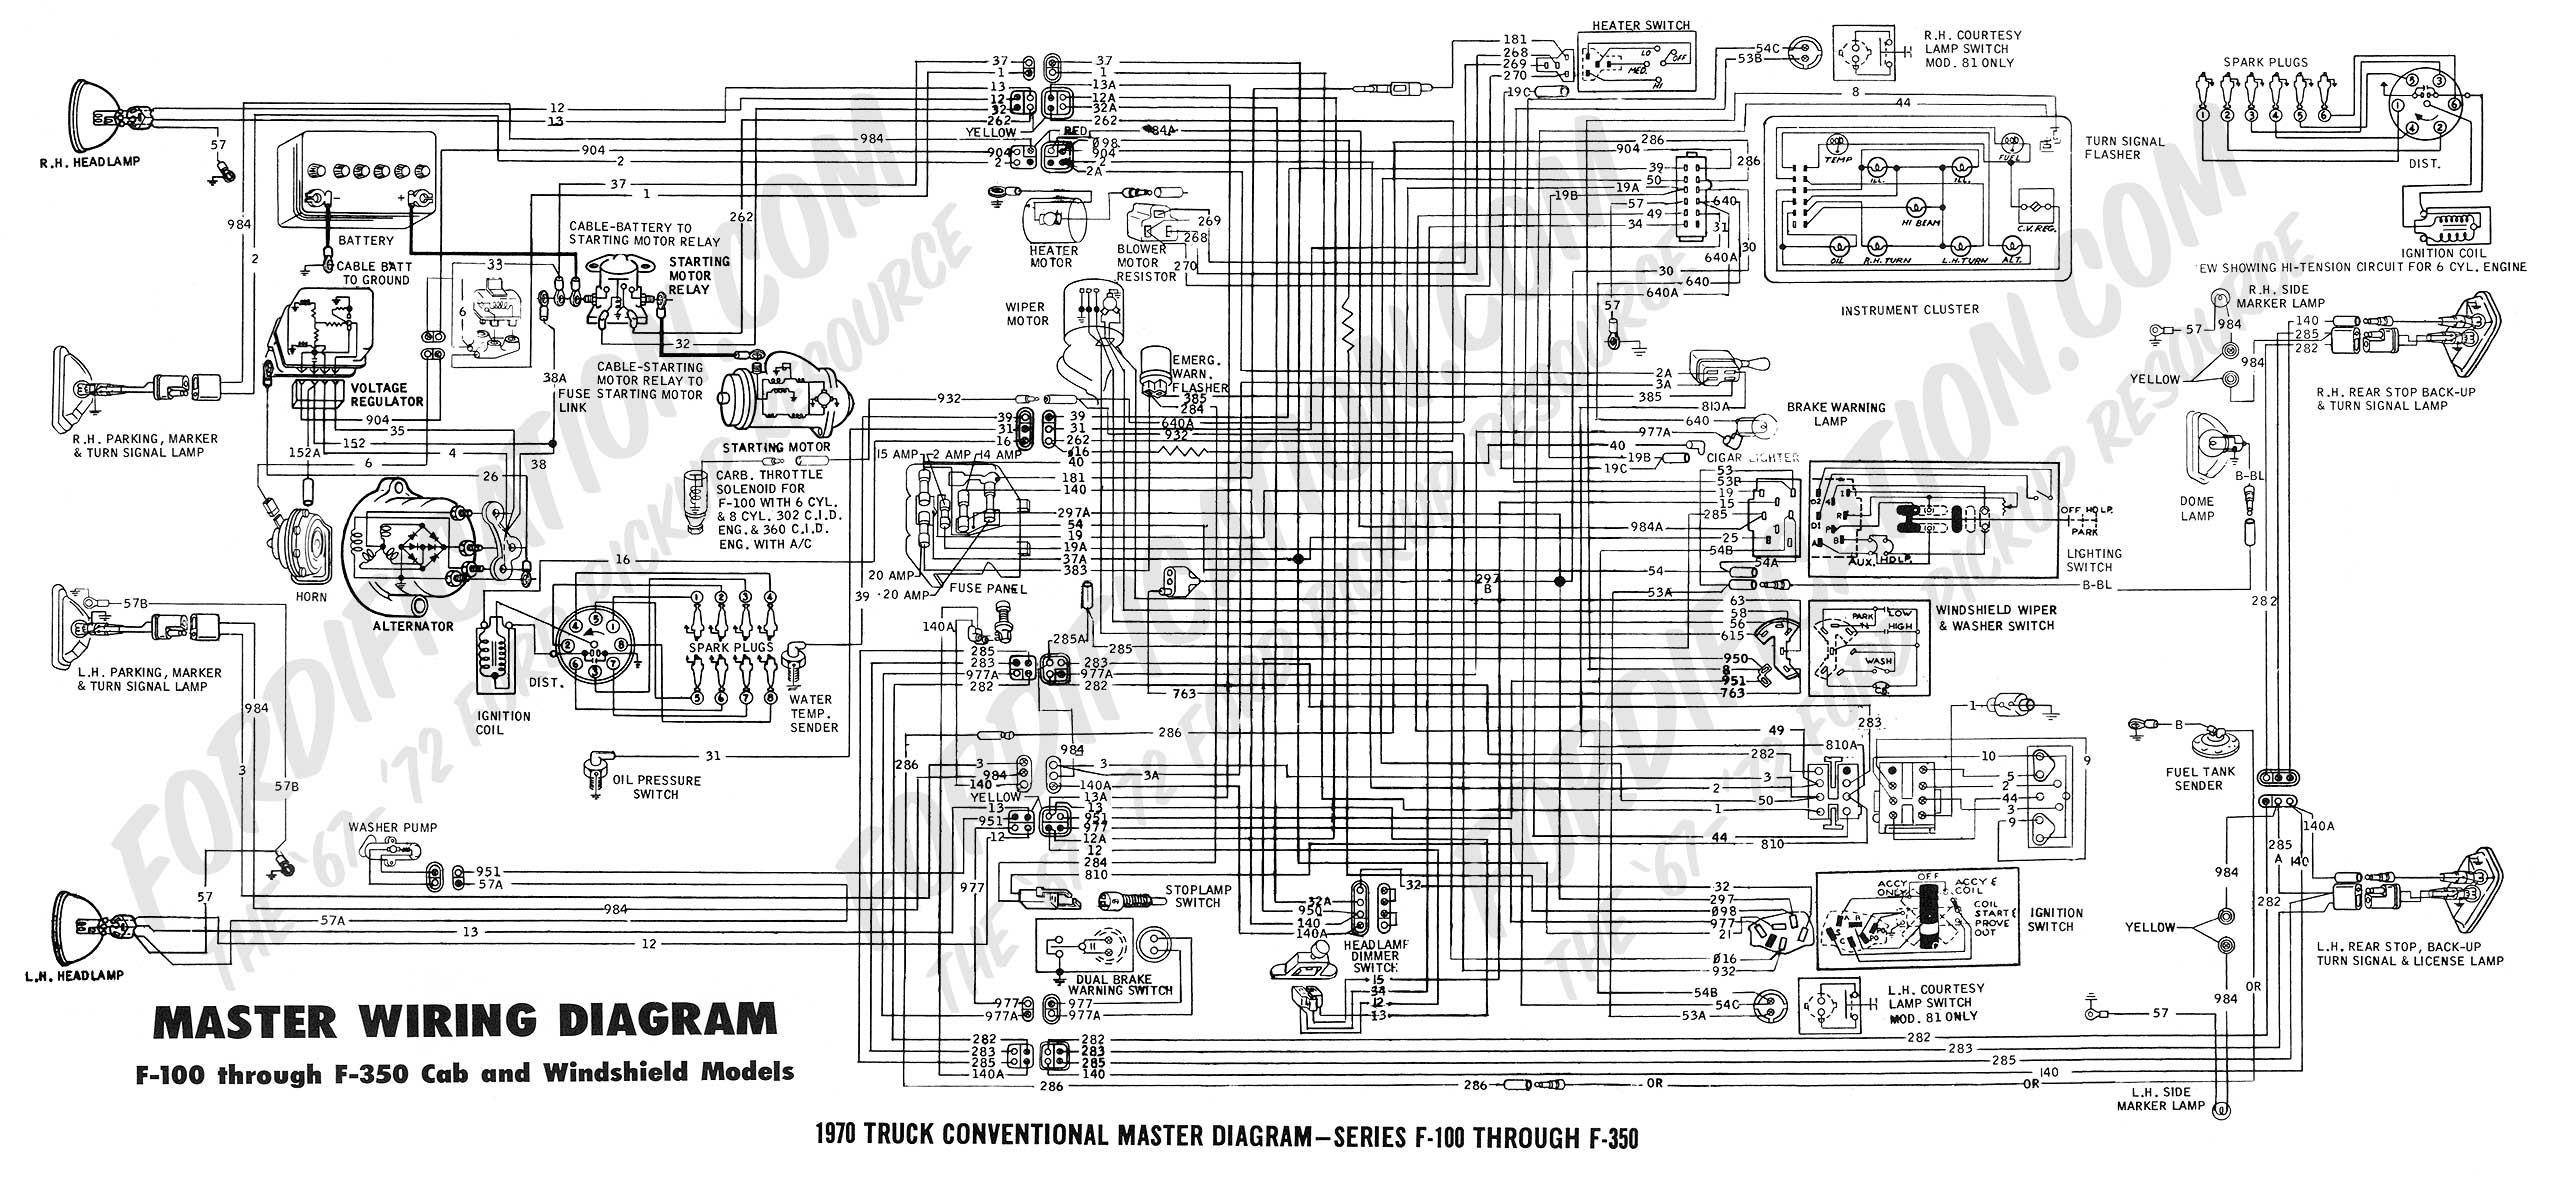 wiring diagram 70_master wiring diagram for 1971 ford f100 pickup readingrat net 1971 ford f250 wiring diagram at love-stories.co